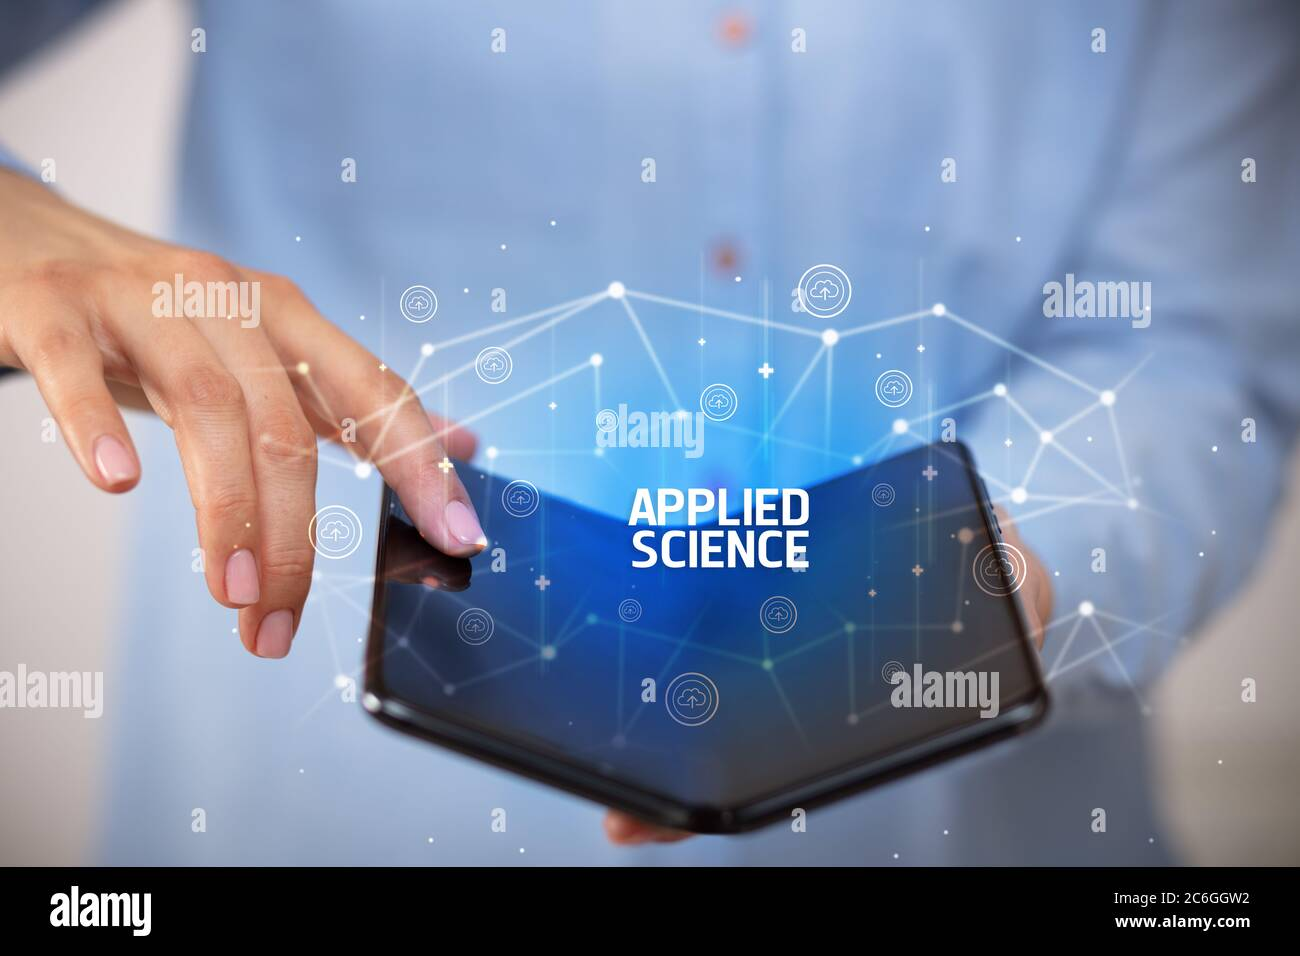 Businessman holding a foldable smartphone with APPLIED SCIENCE inscription, new technology concept Stock Photo